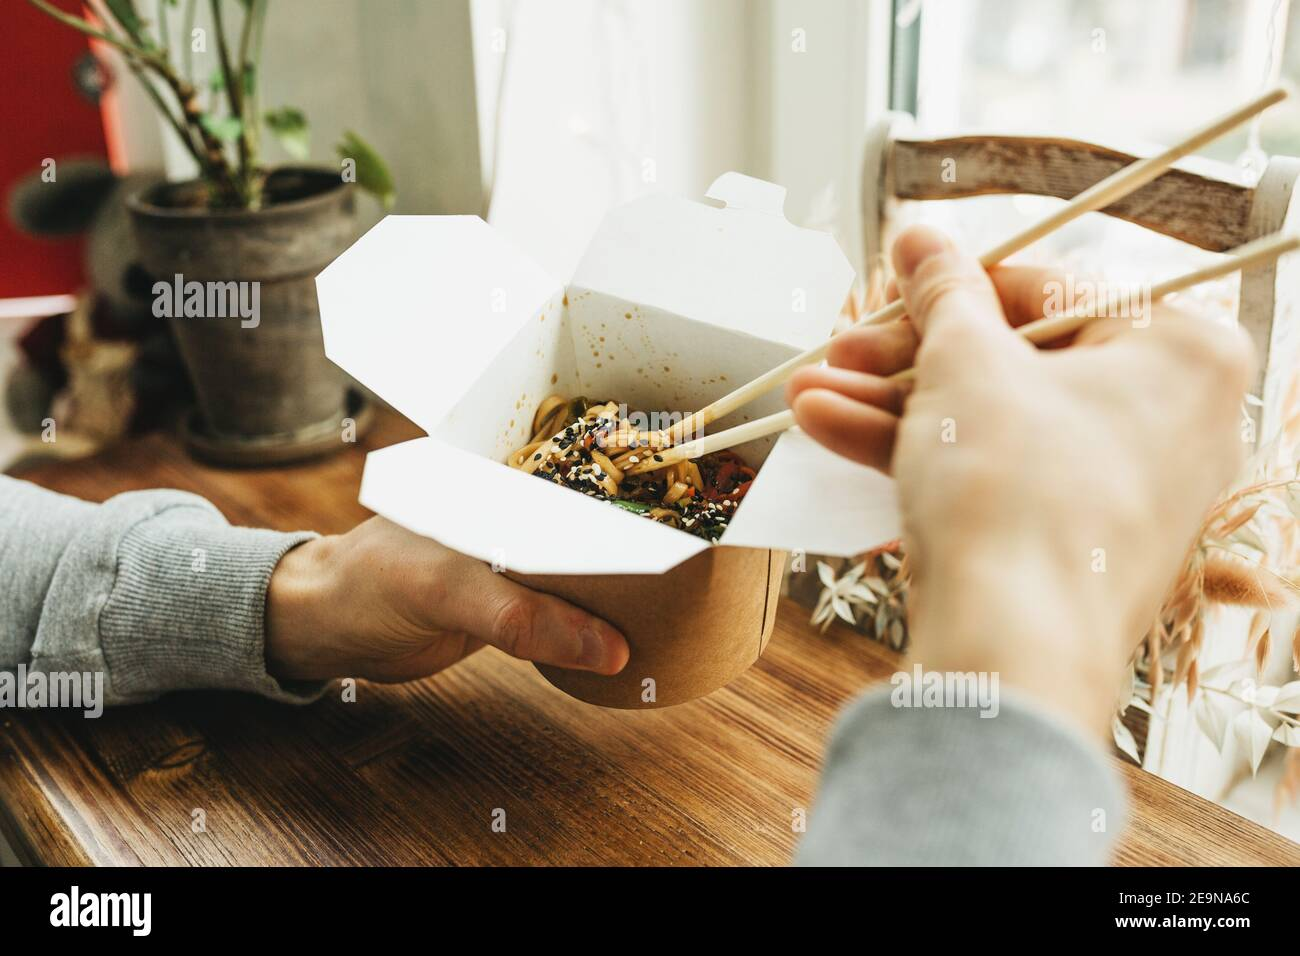 Close-up of noodles in a box. Takeaway food. Person eats food with chopsticks. Stock Photo